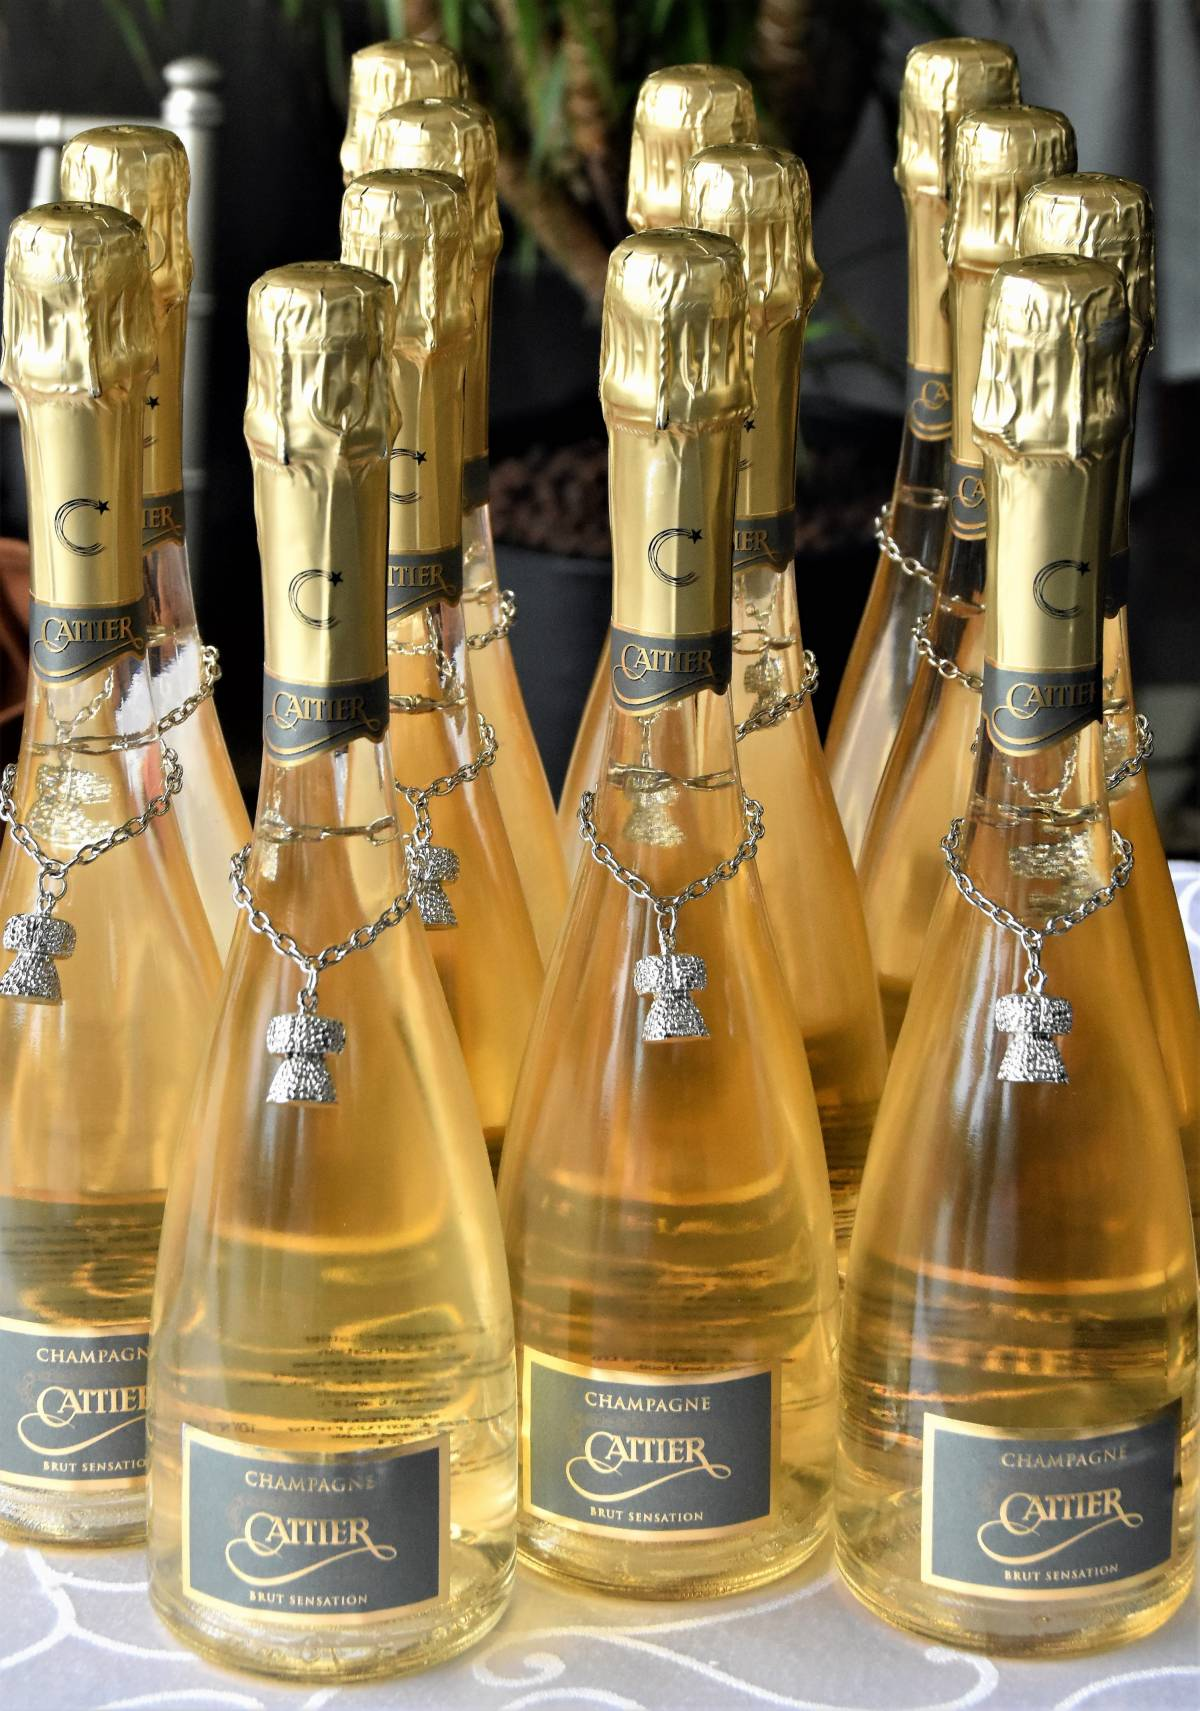 Champagne Cattier Appoints Bottles and Bottles as Exclusive Distributor in Singapore